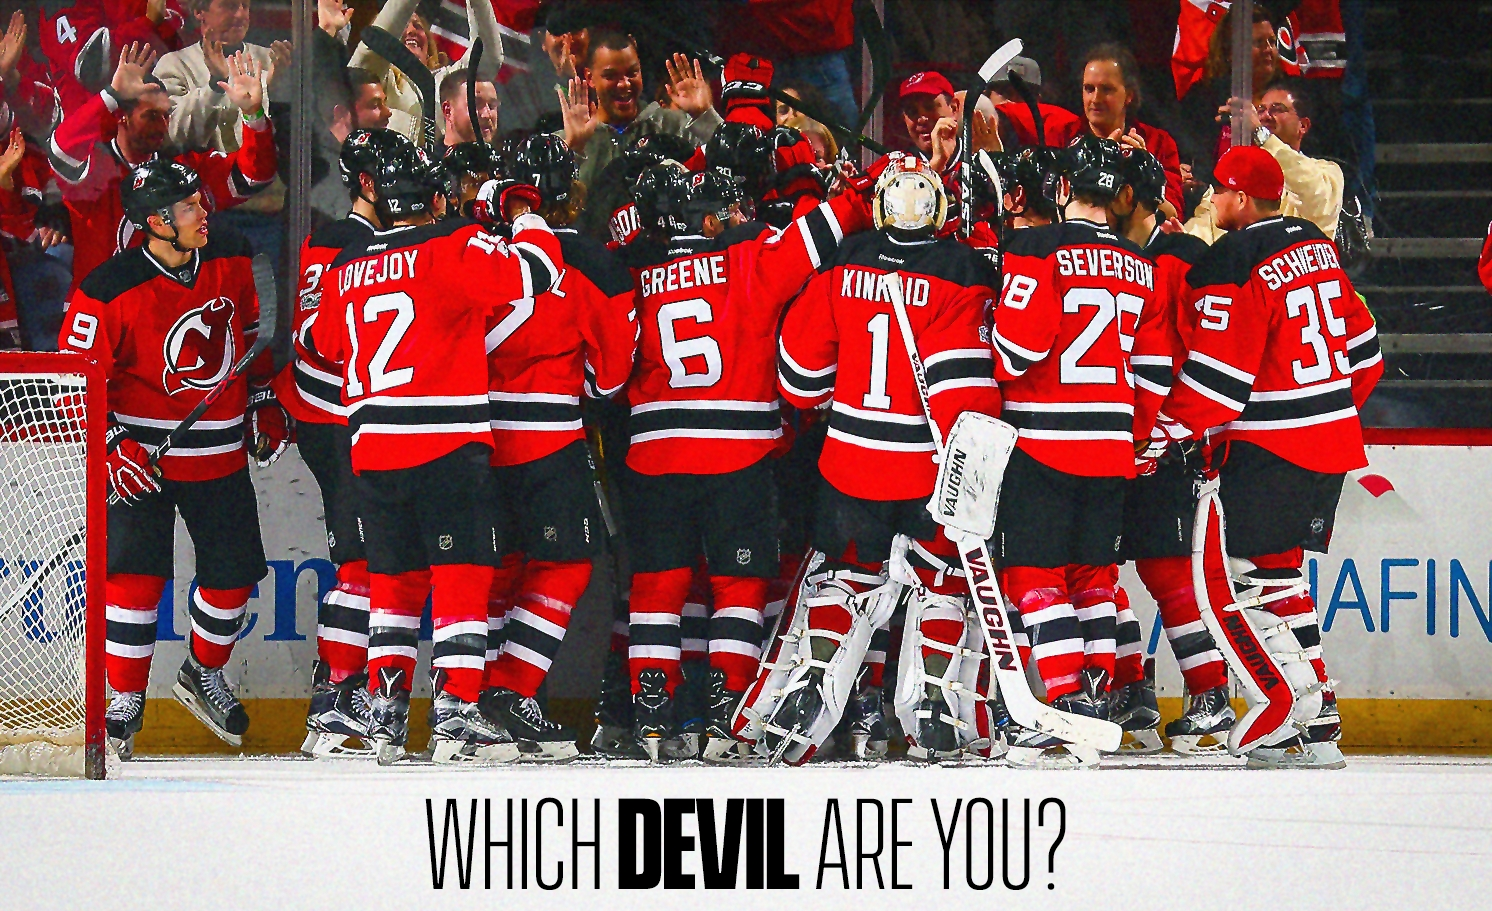 which devil are you? | new jersey devils